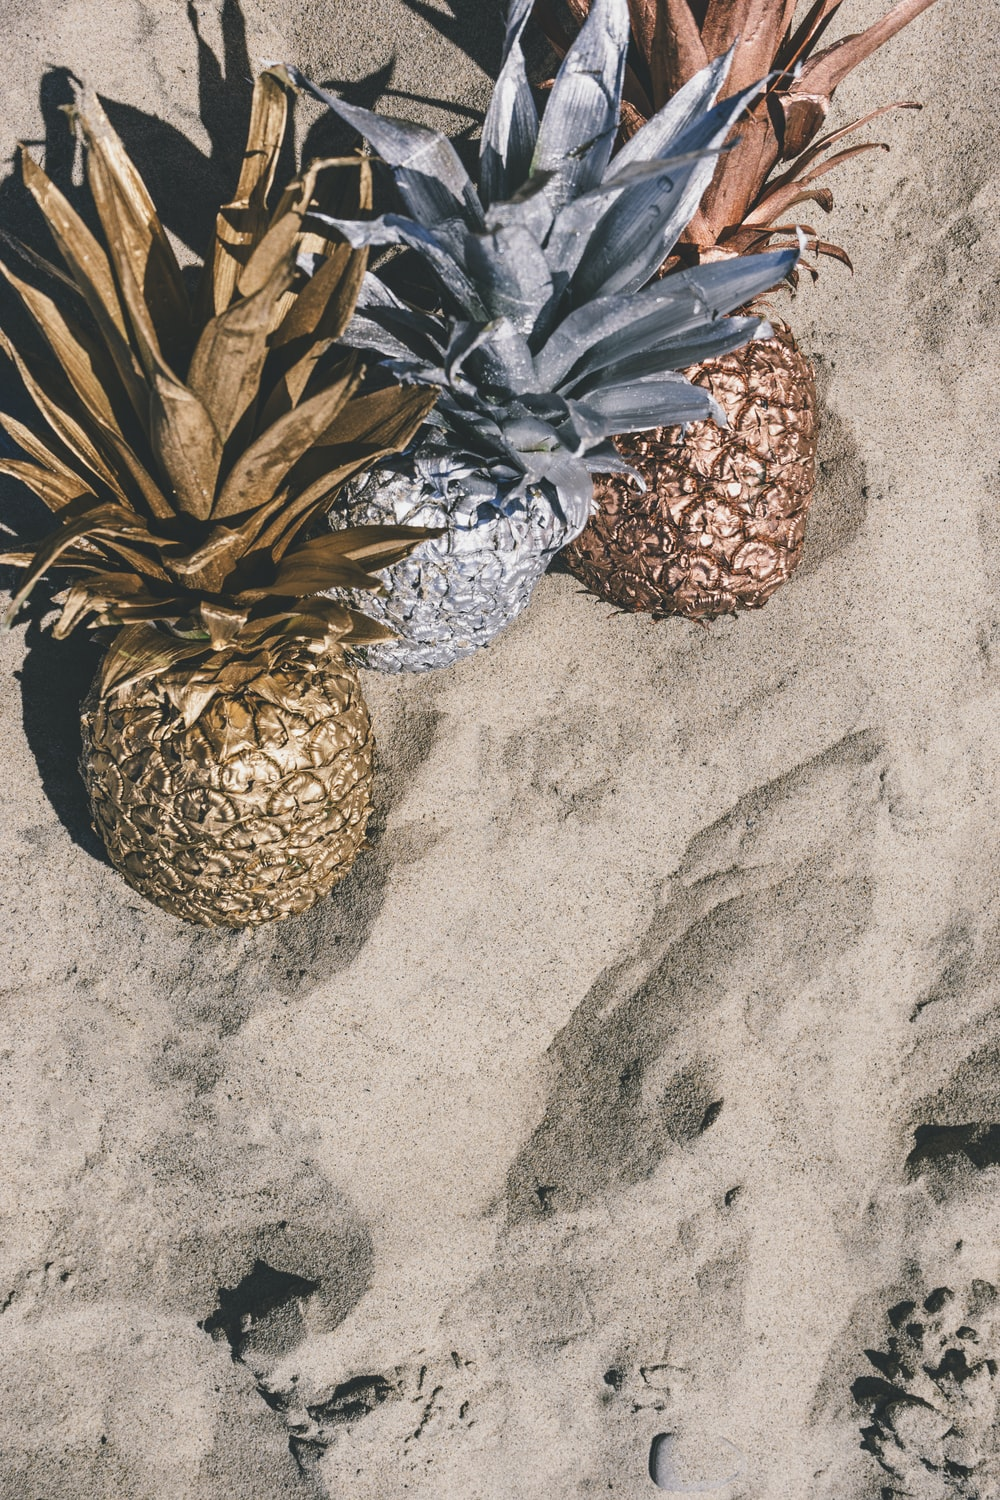 decorative pineapples on gray sand